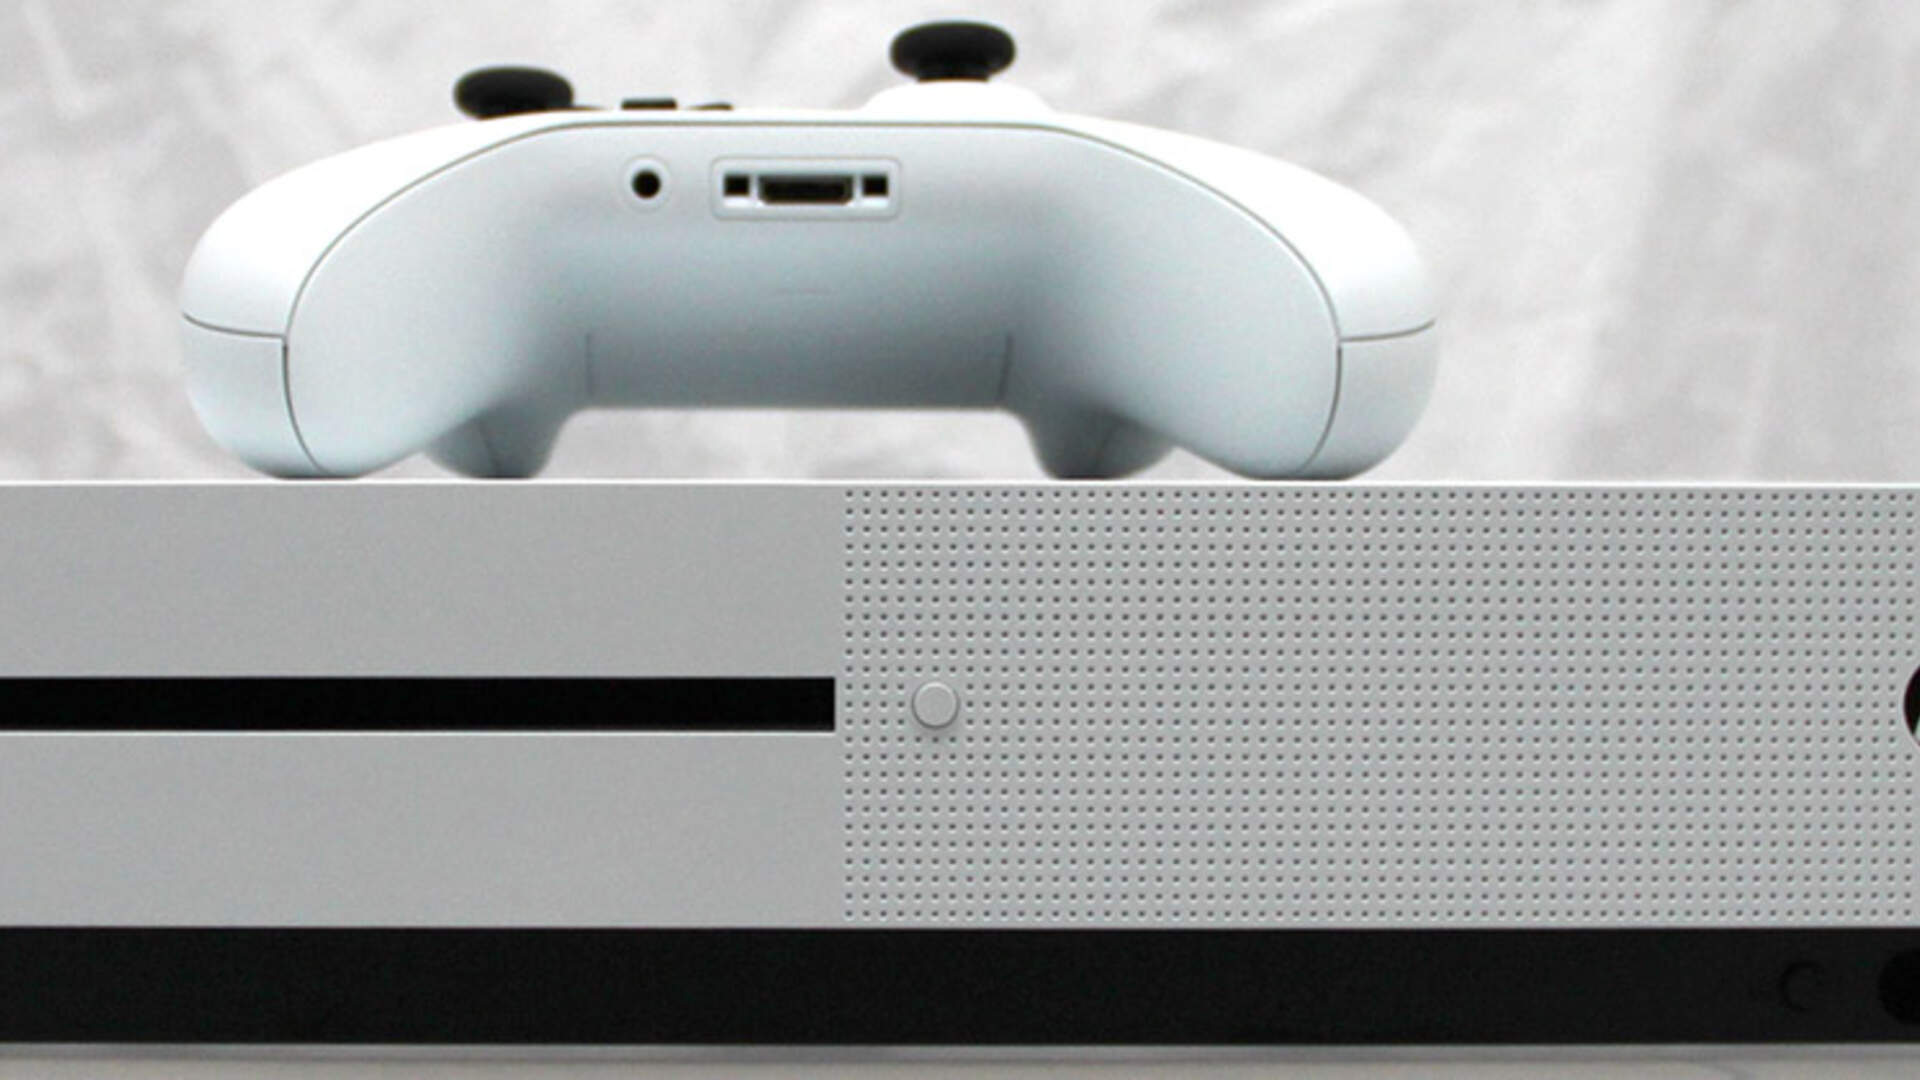 The Next Xbox Might Deliberately be Missing a Big Feature